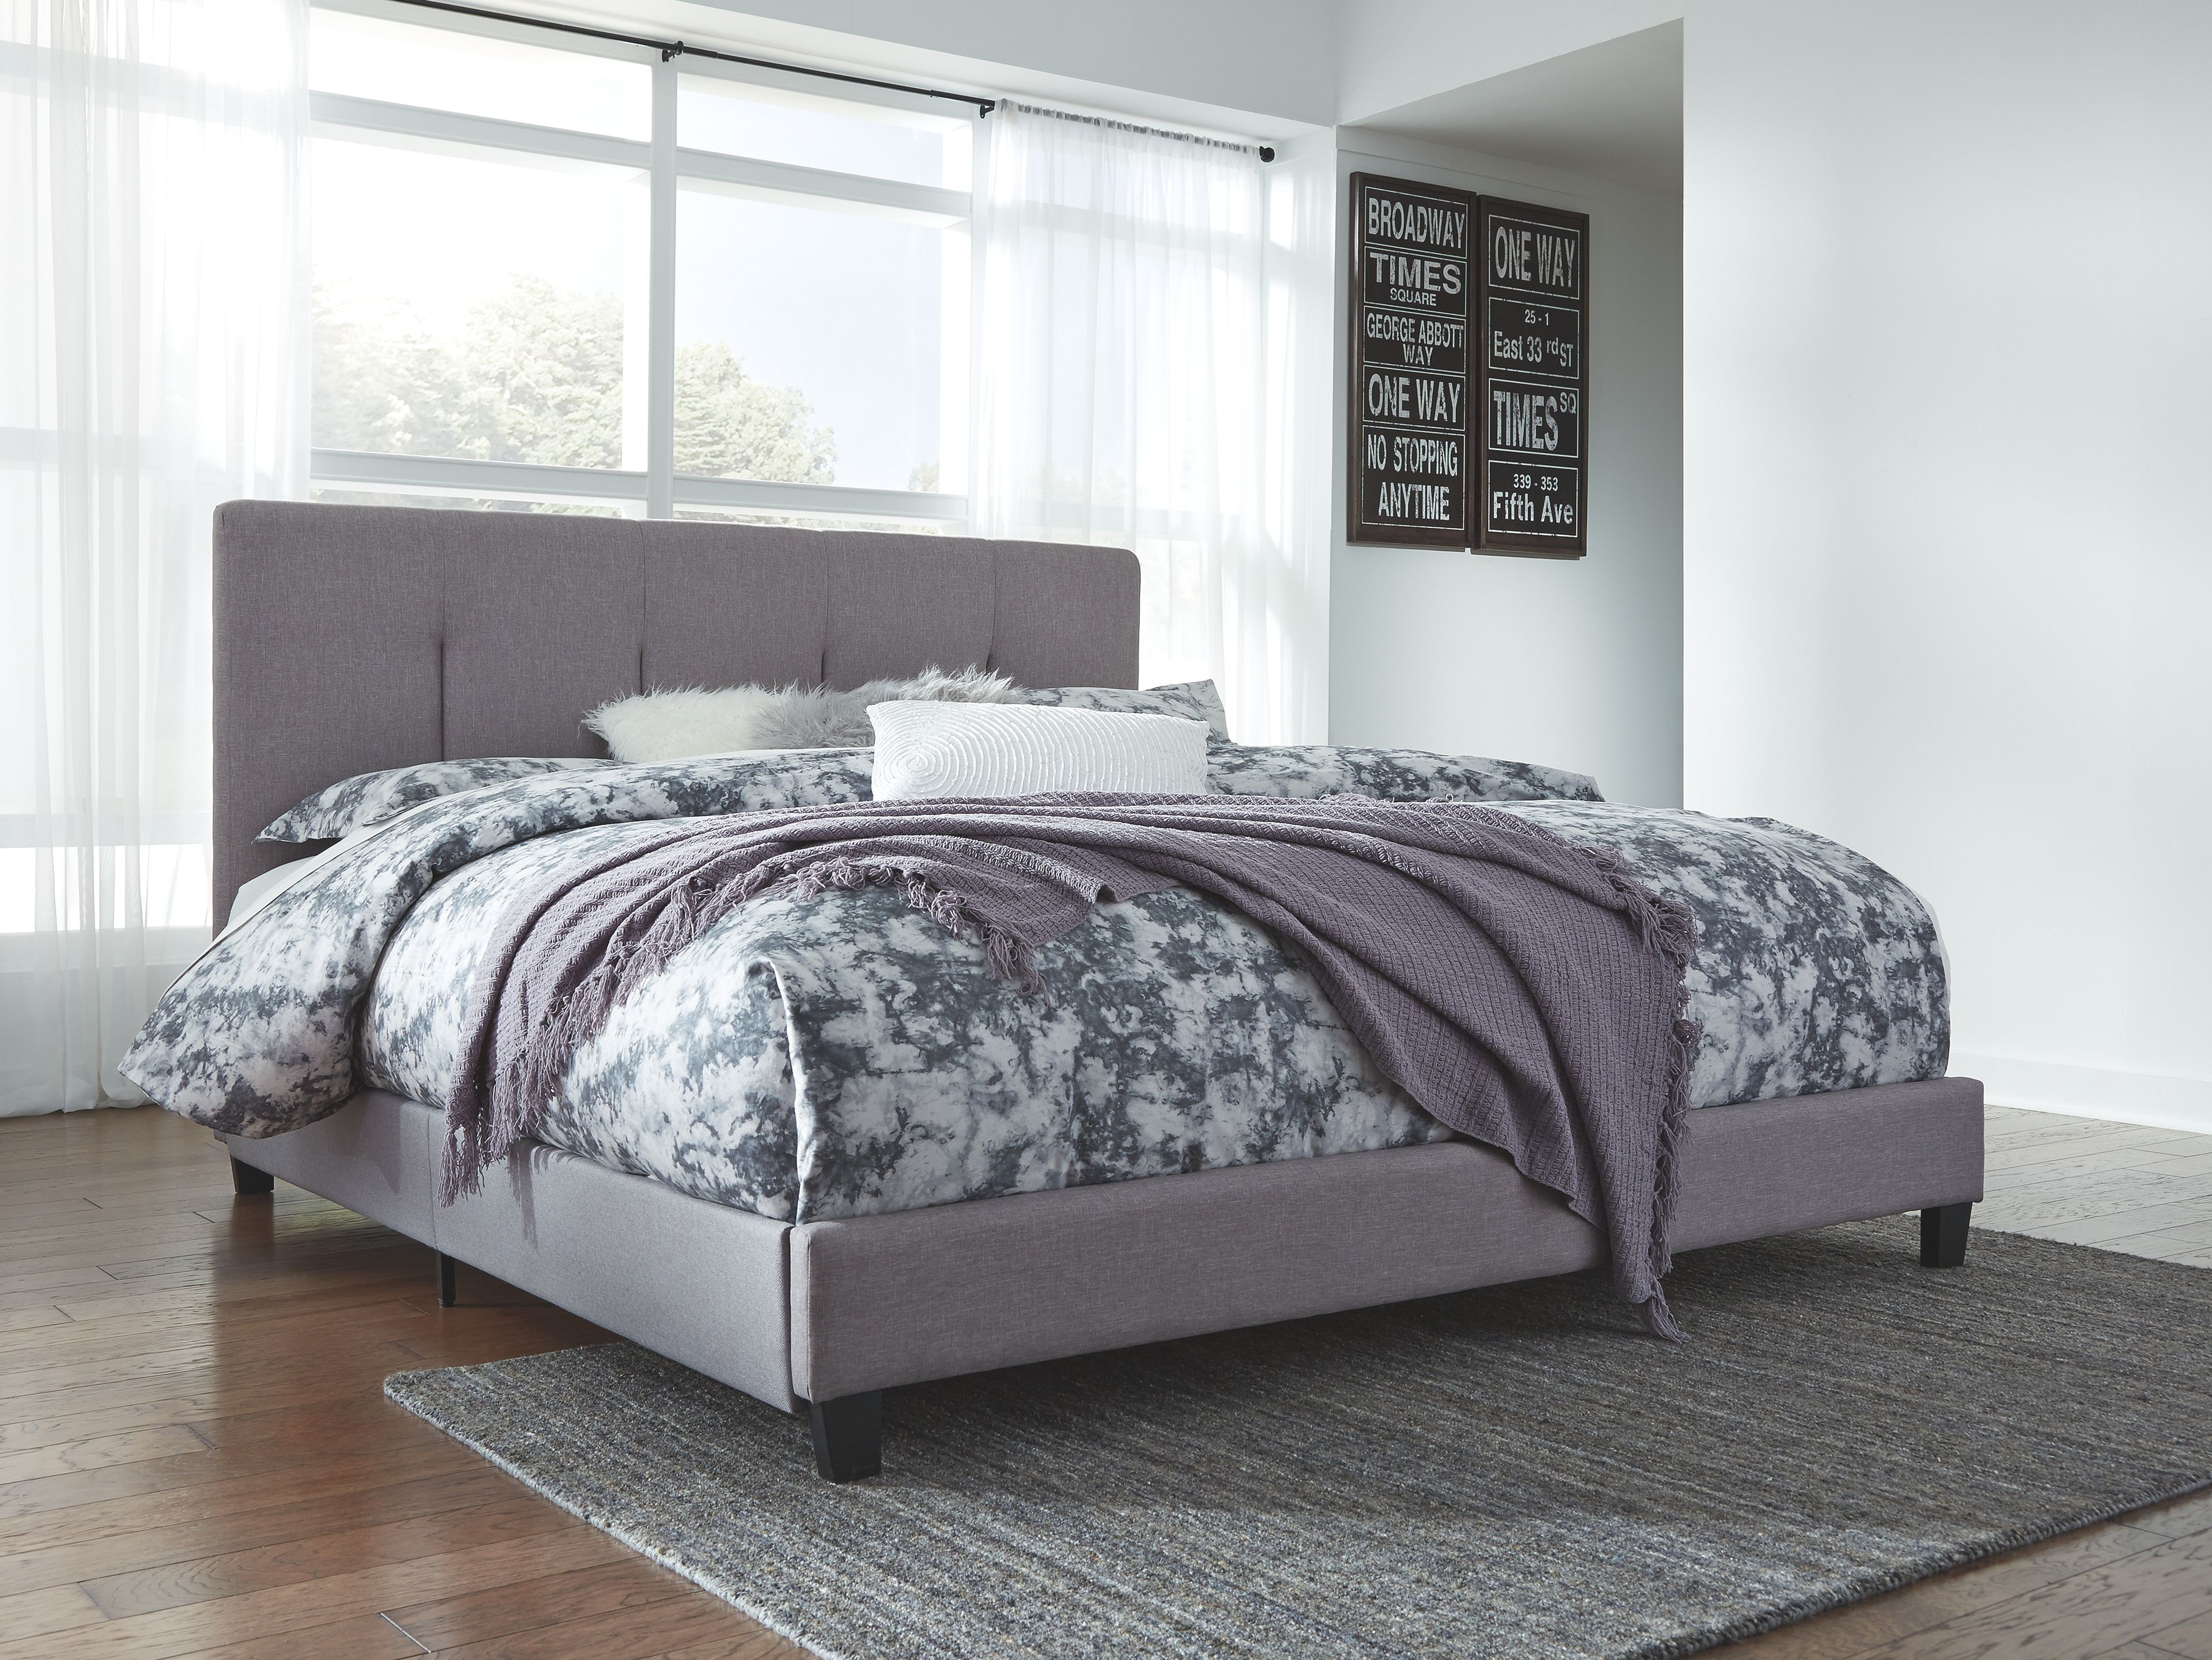 Bedroom Furniture Jackson Ms american freight furniture and mattress in jackson ms 601 982